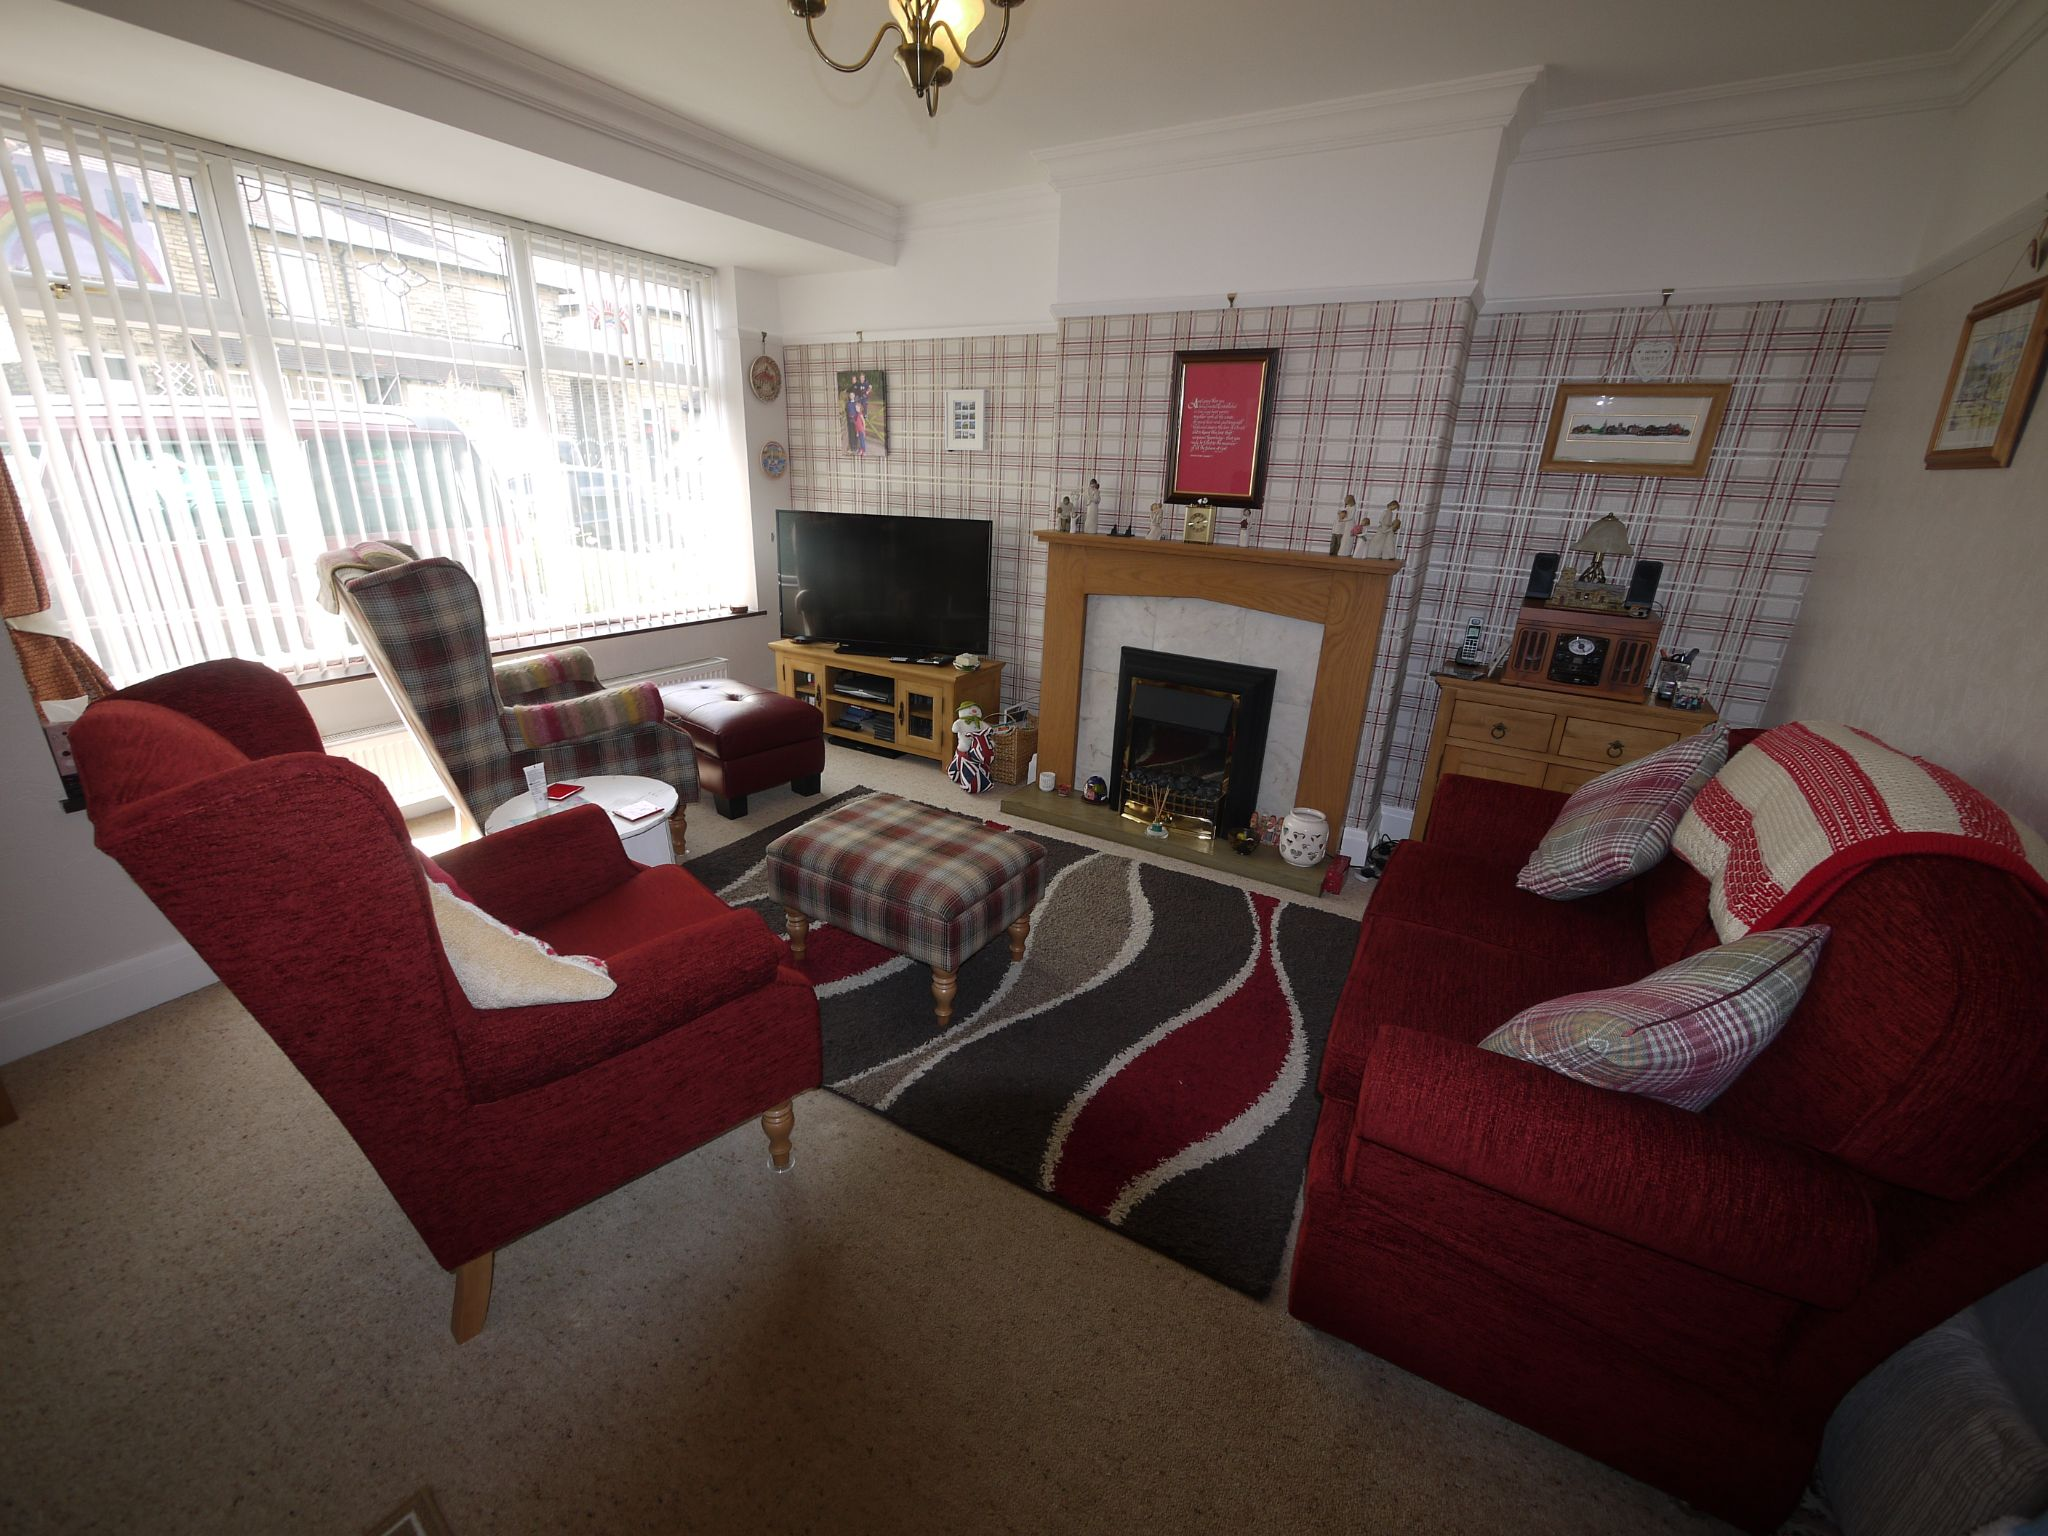 3 bedroom semi-detached house SSTC in Calderdale - Photograph 12.